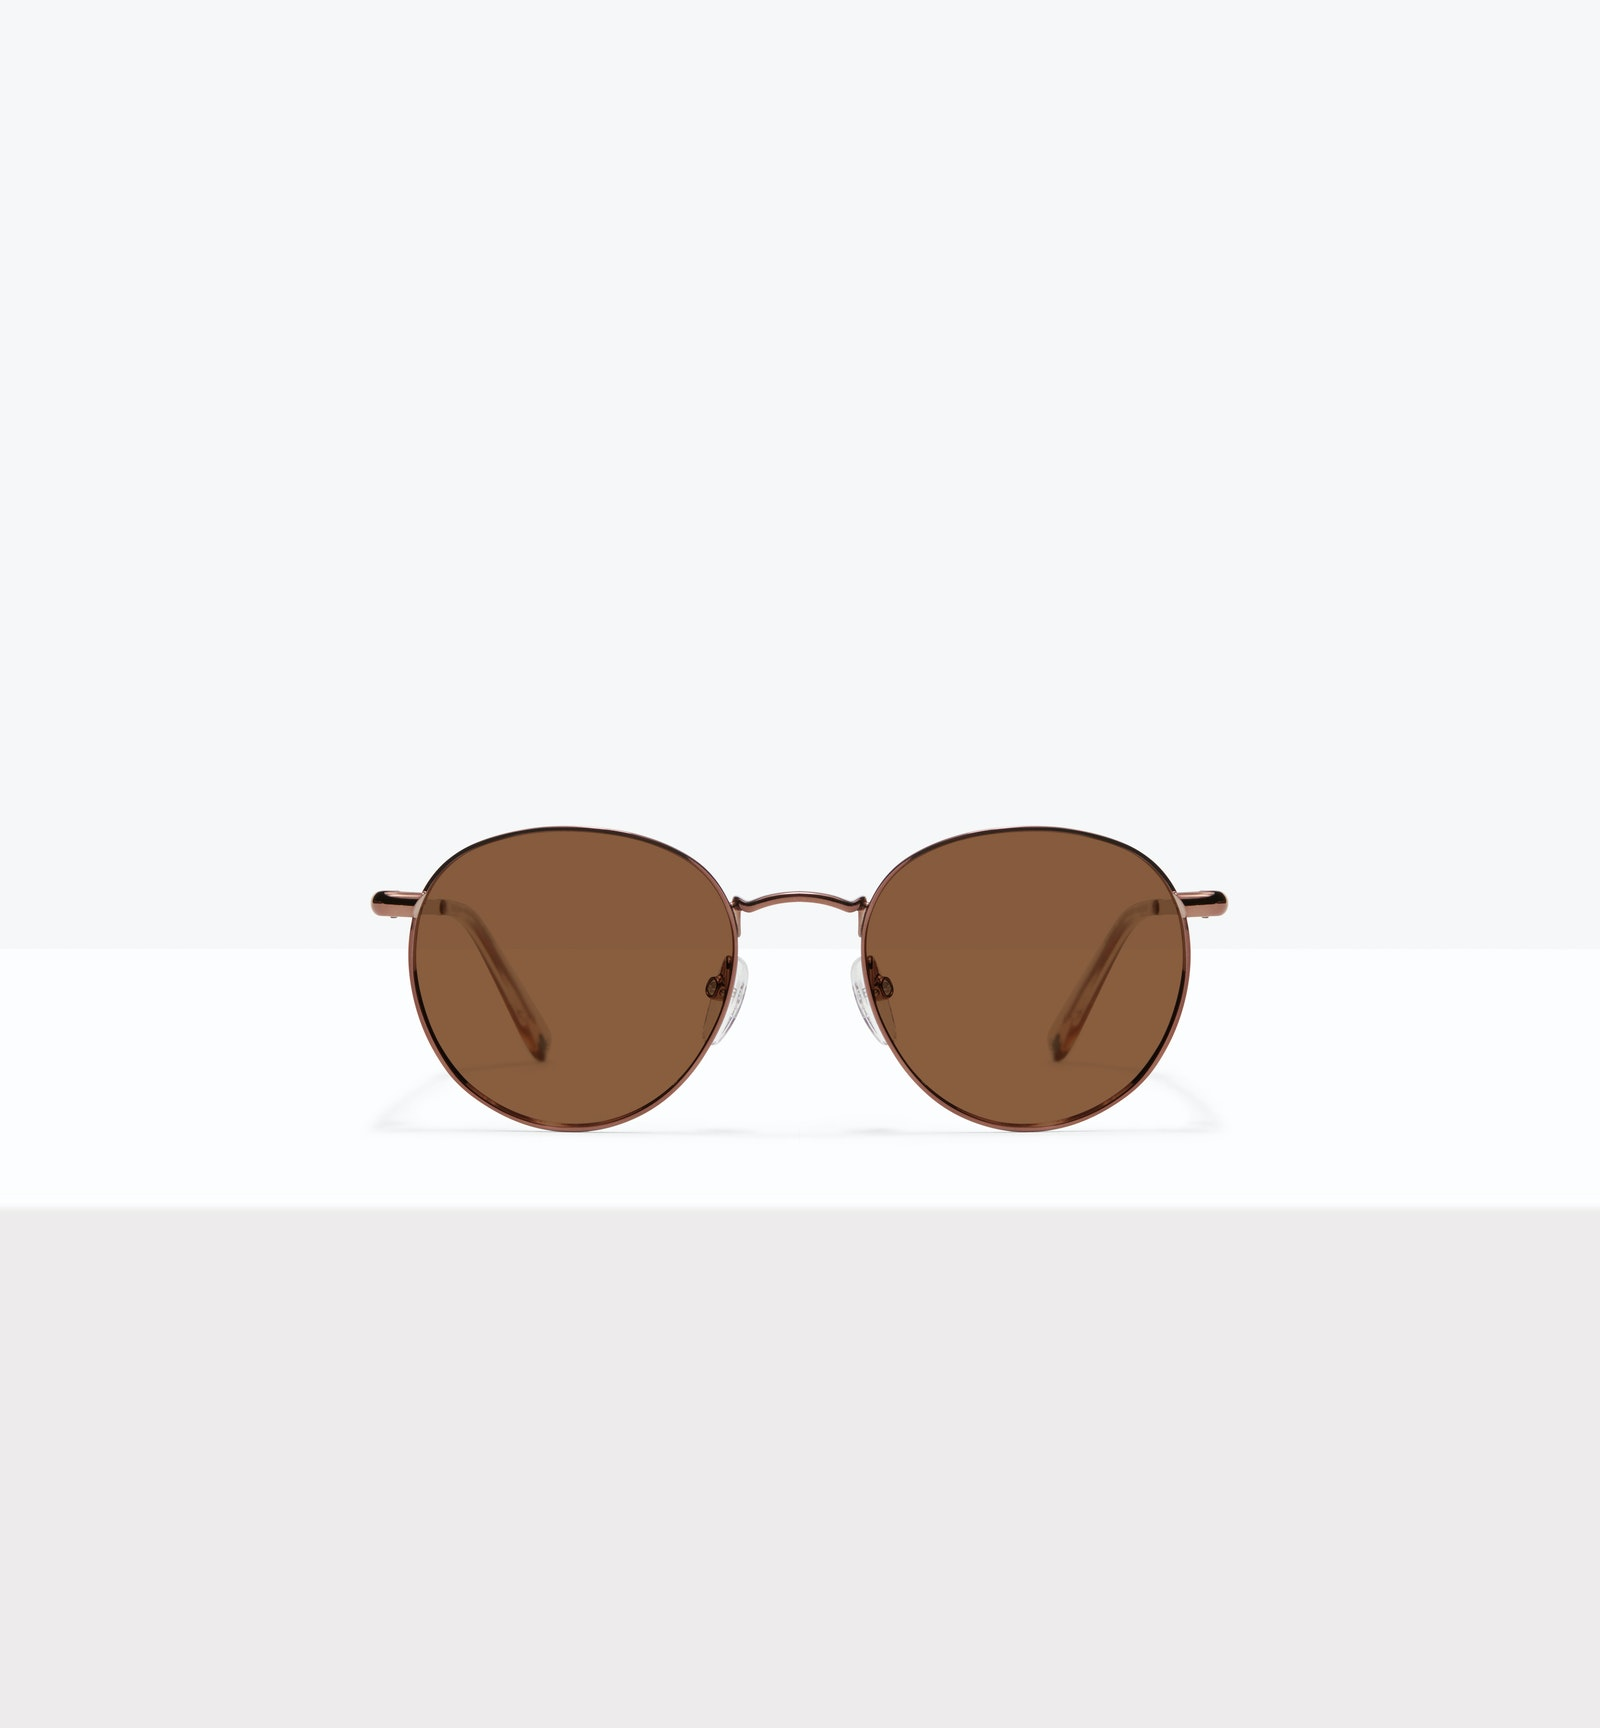 Affordable Fashion Glasses Round Sunglasses Men Women Dynasty M Copper